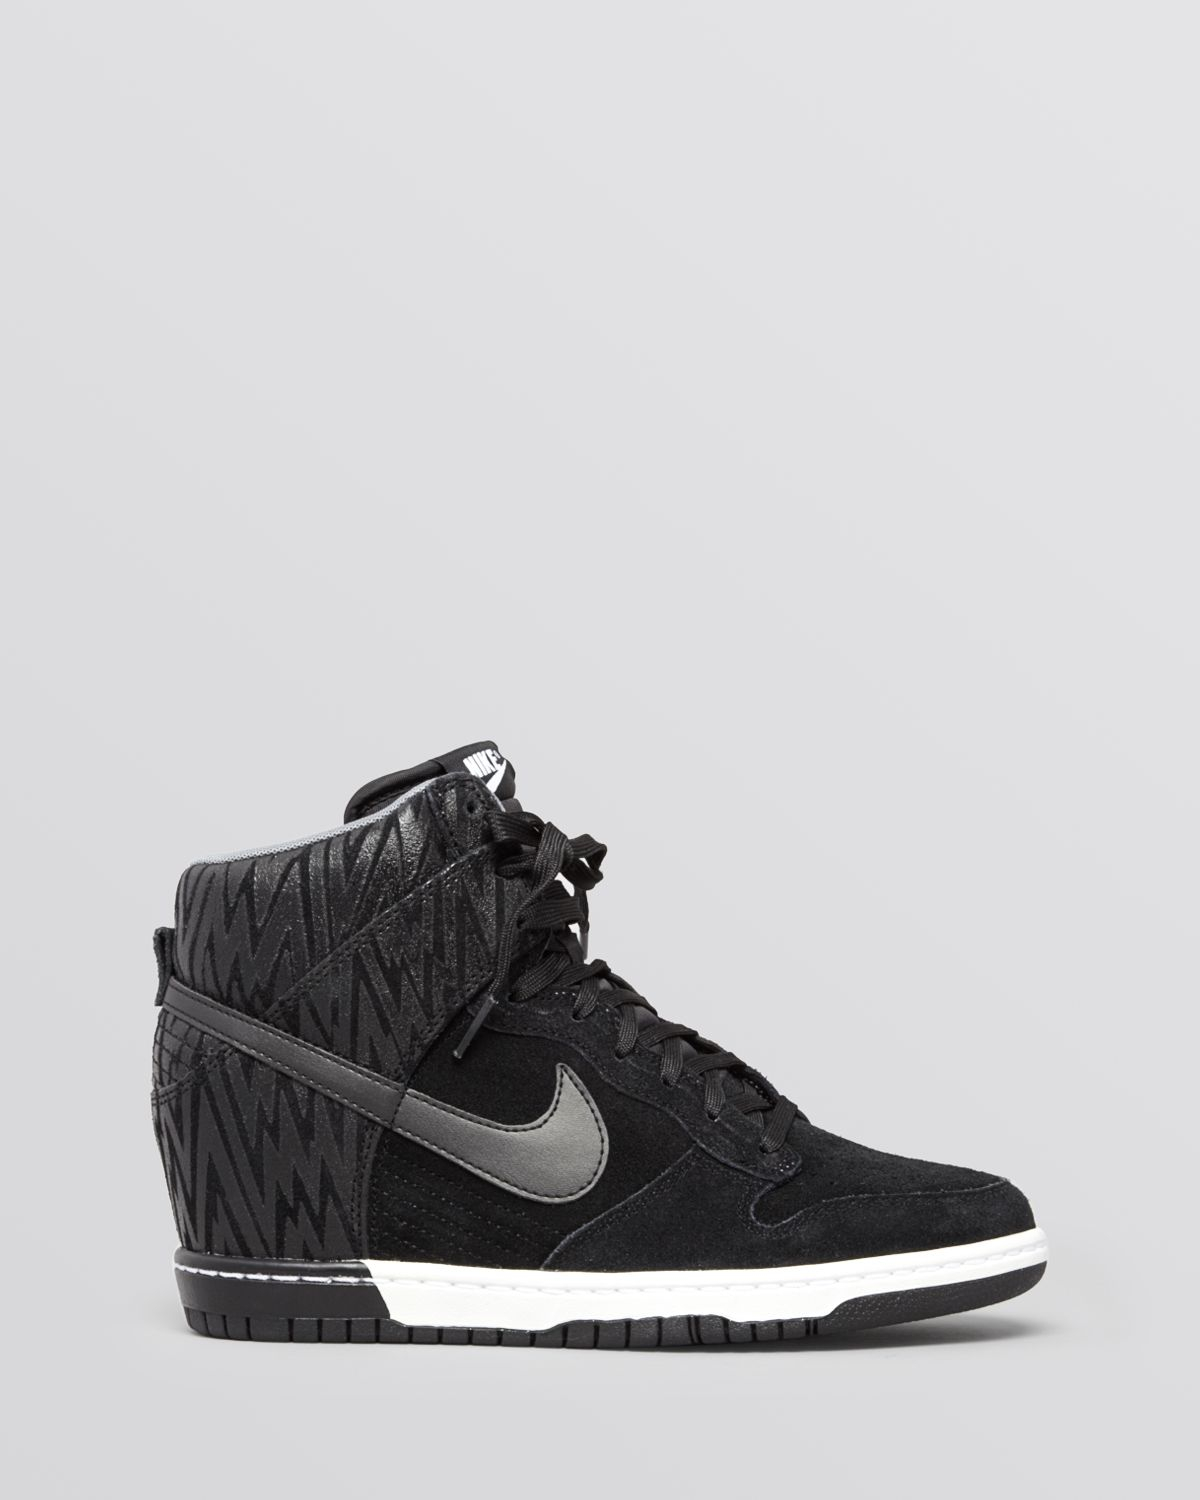 854bbc0a77b Gallery. Previously sold at  Bloomingdale s · Women s Wedge Sneakers  Women s Nike Dunk Women s Nike Dunk Sky Hi ...